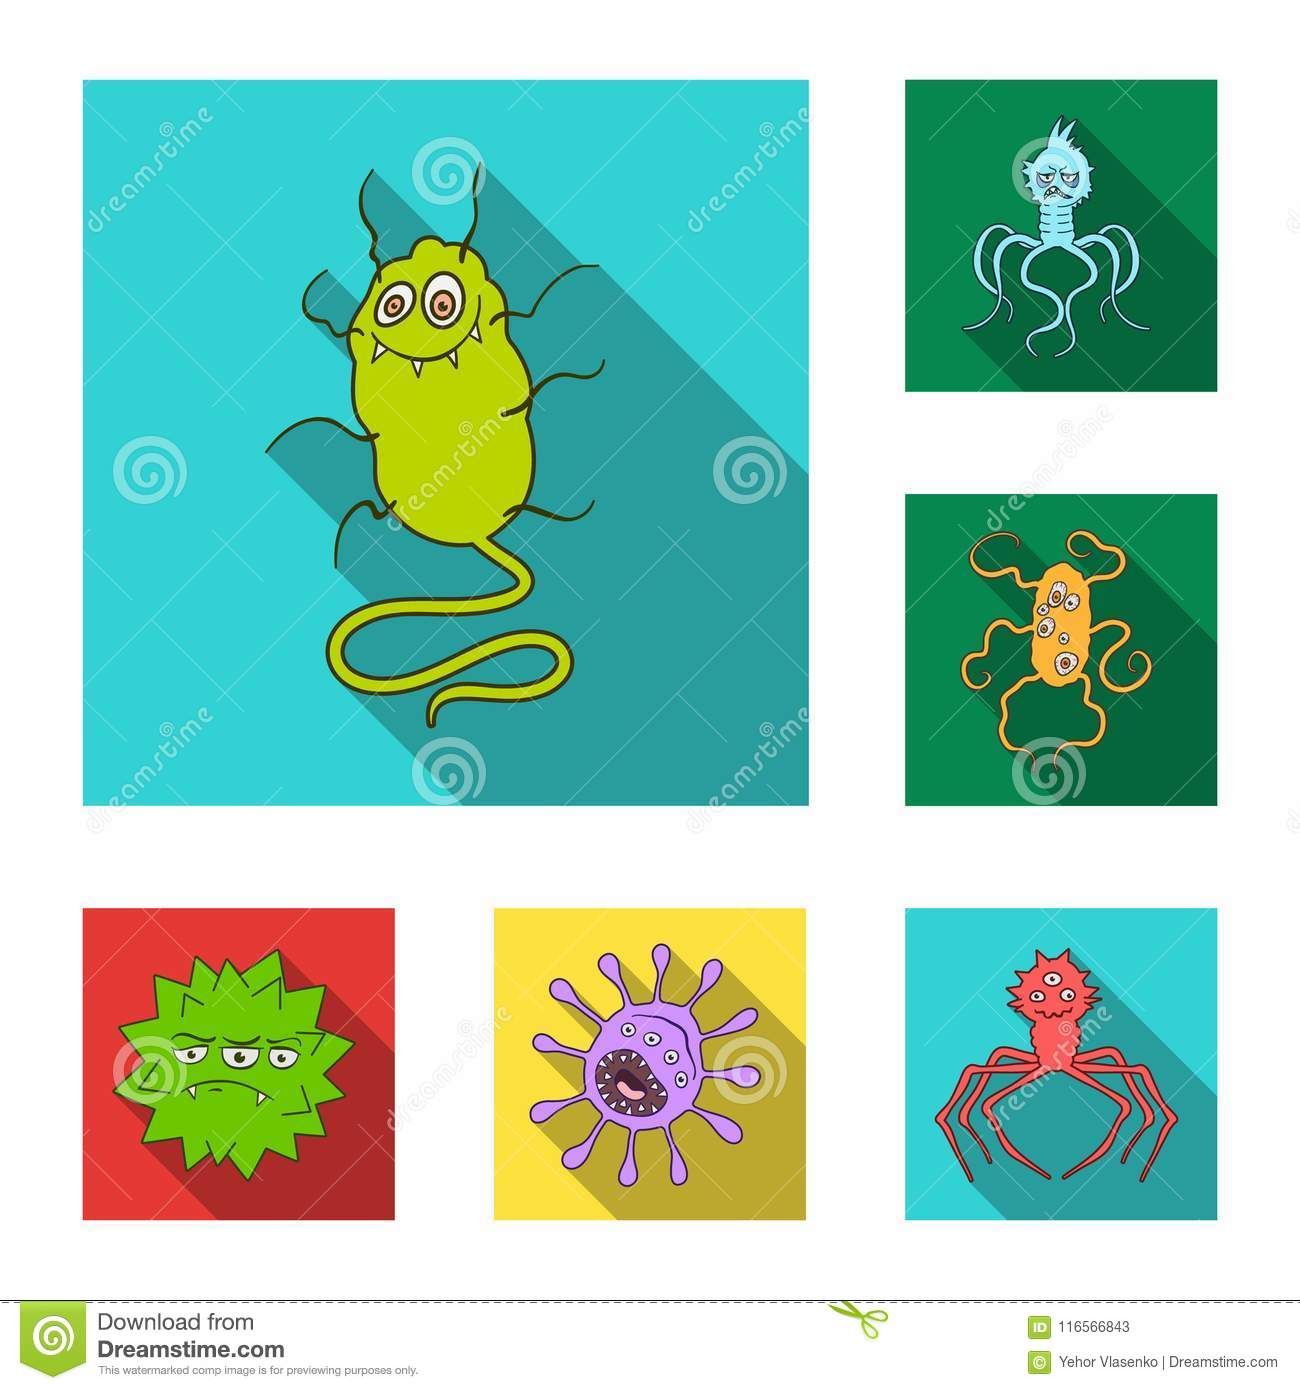 Types Of Funny Microbes Flat Icons In Set Collection For